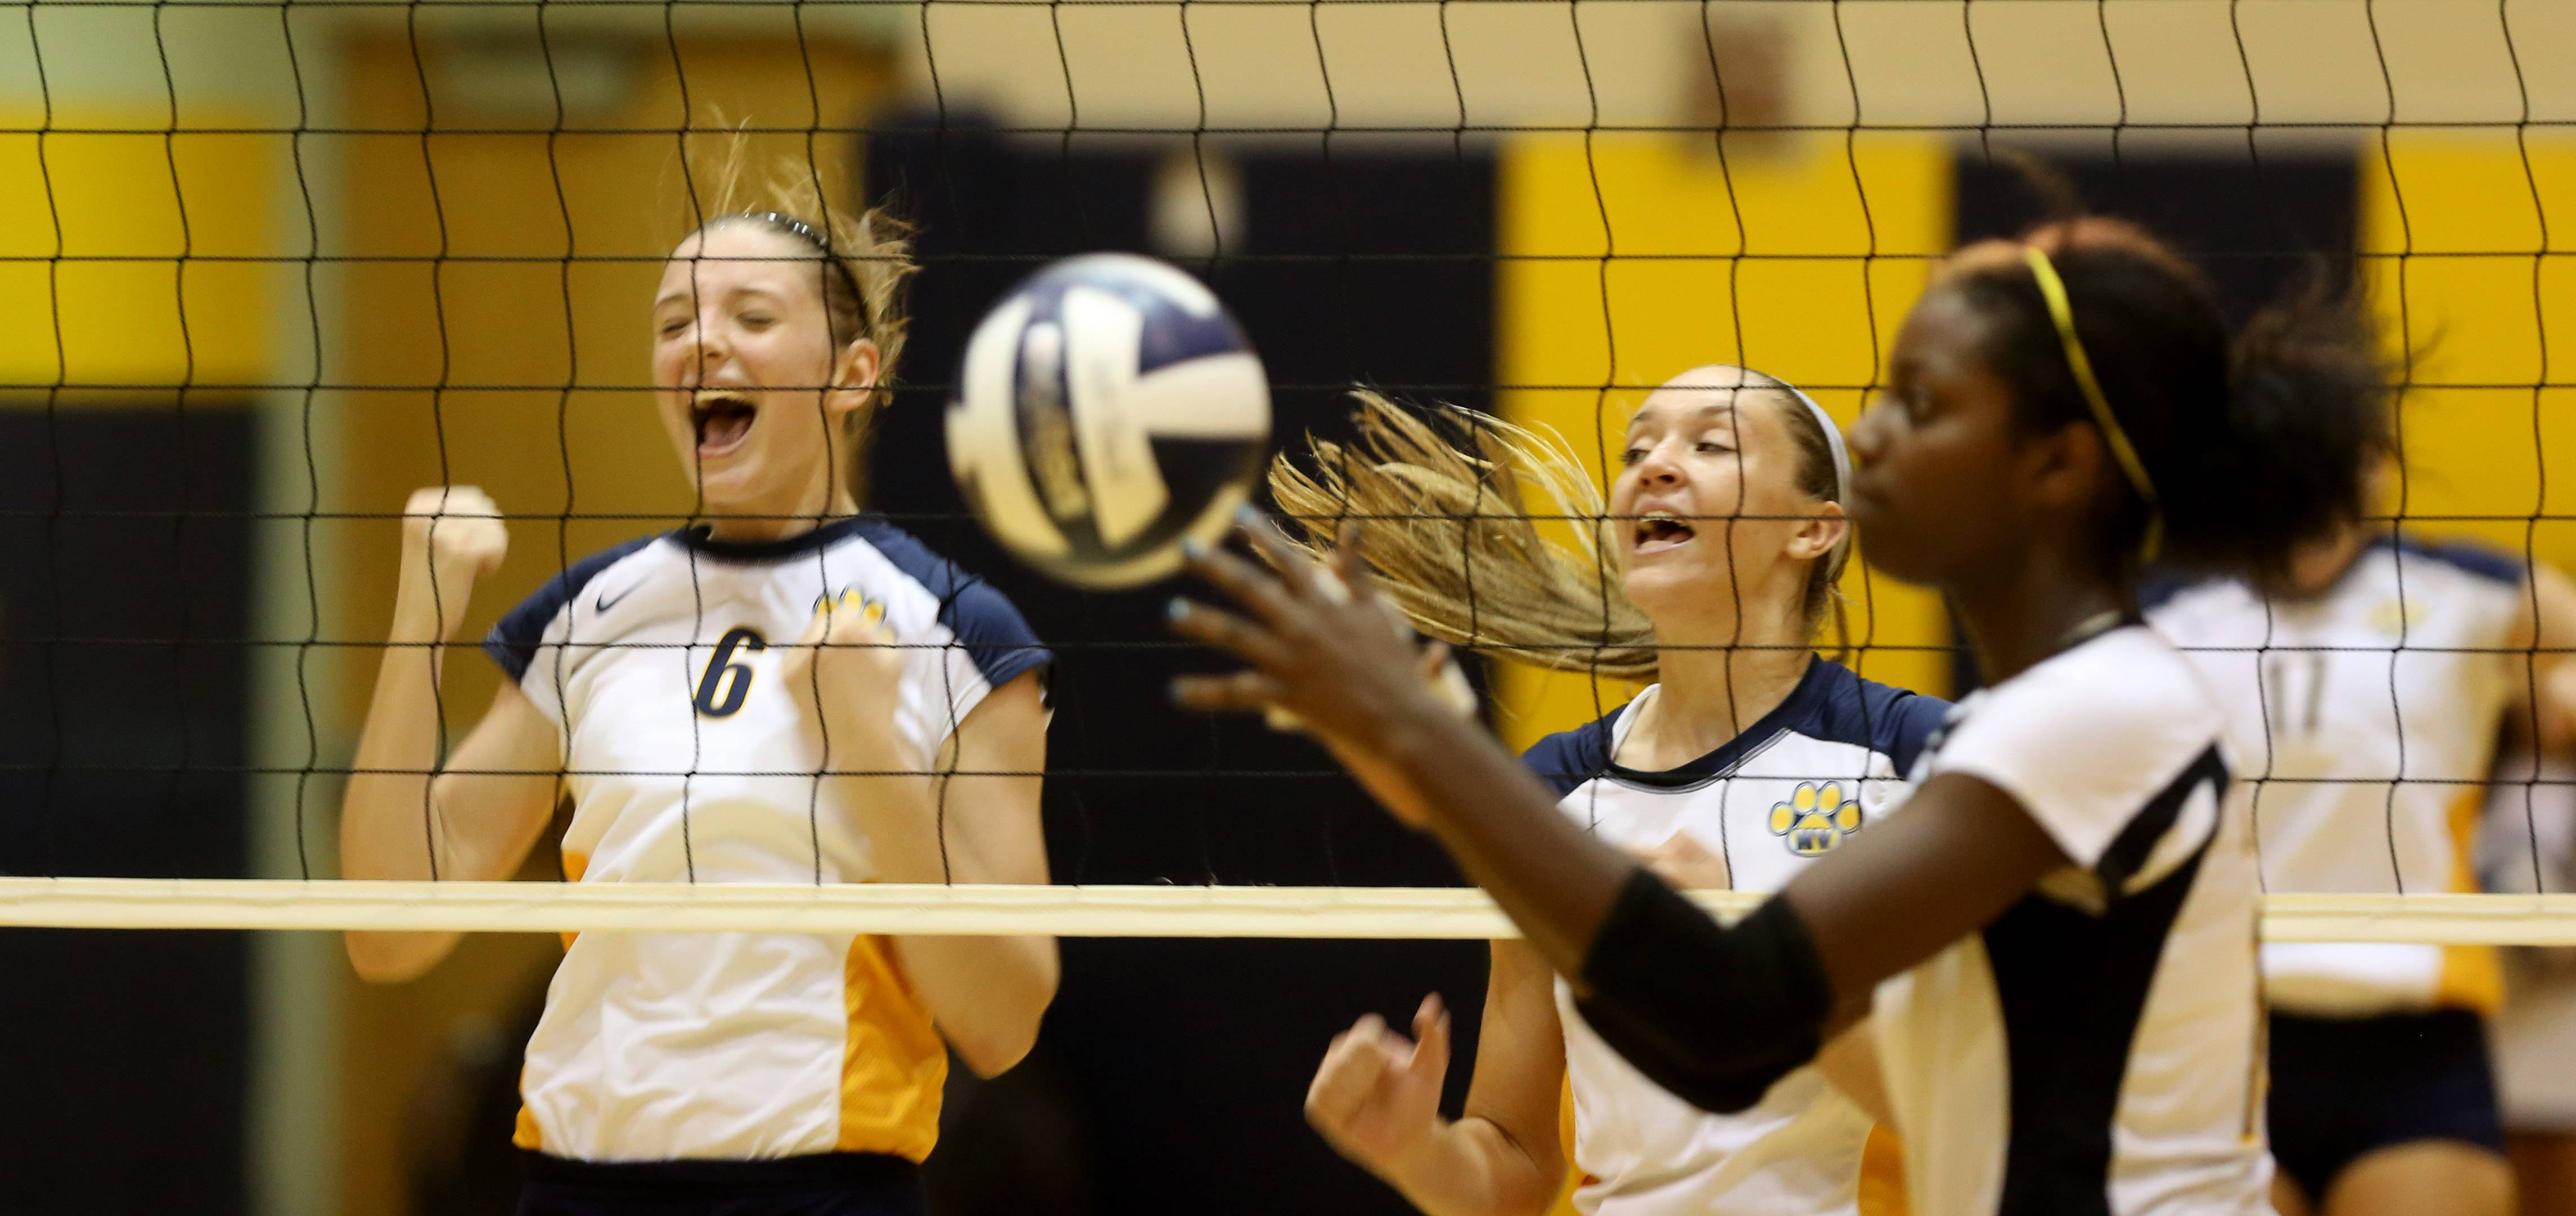 Neuqua Valley's Anne Botos (6) celebrates a point as Metea Valley's Ashley Walker gathers the ball, during girls volleyball action in Naperville.